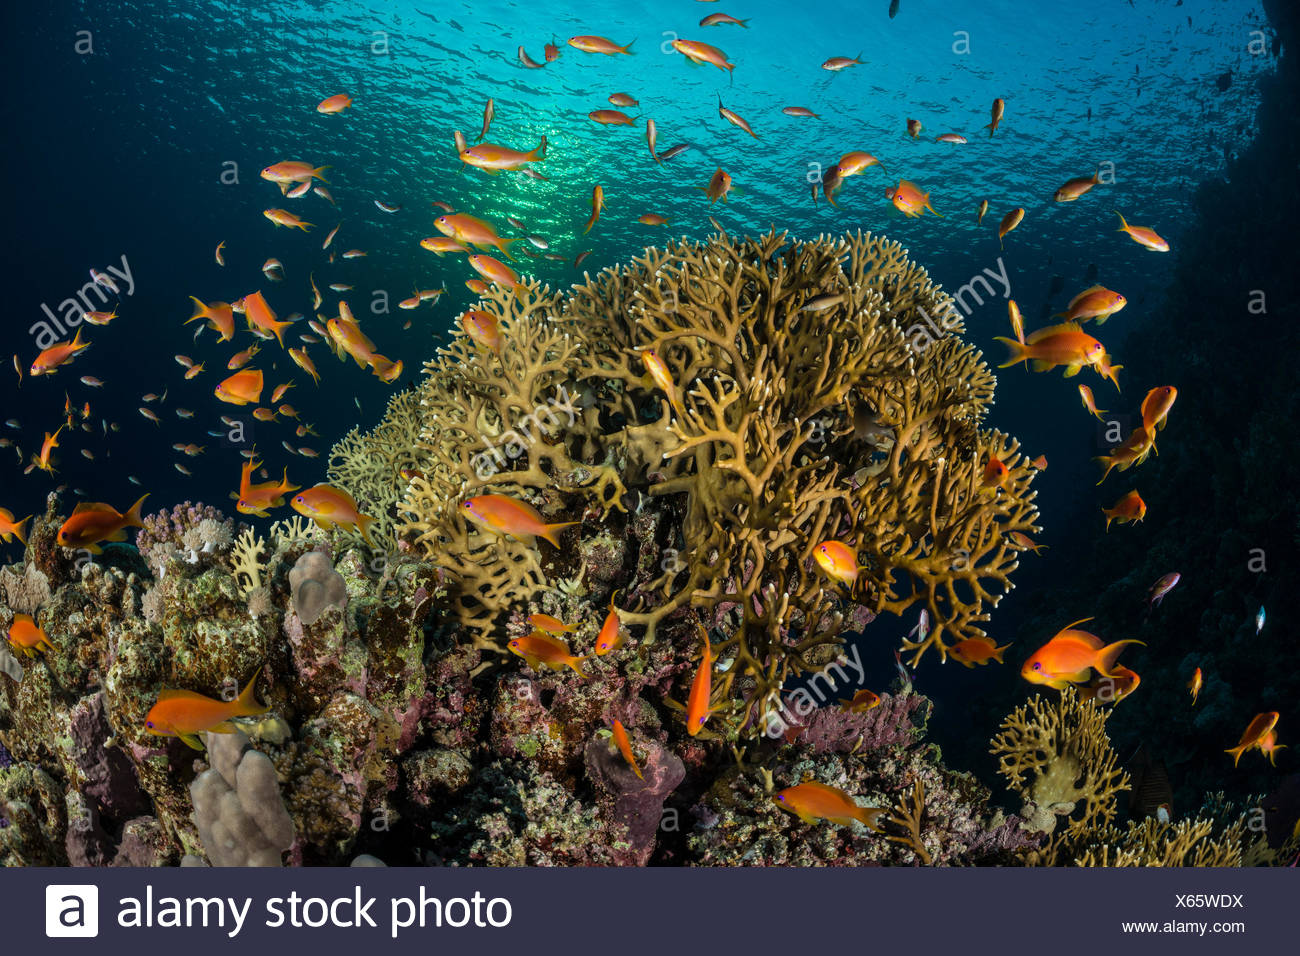 Net Fire Coral, Millepora dichotoma, Marsa Alam, Red Sea, Egypt - Stock Image